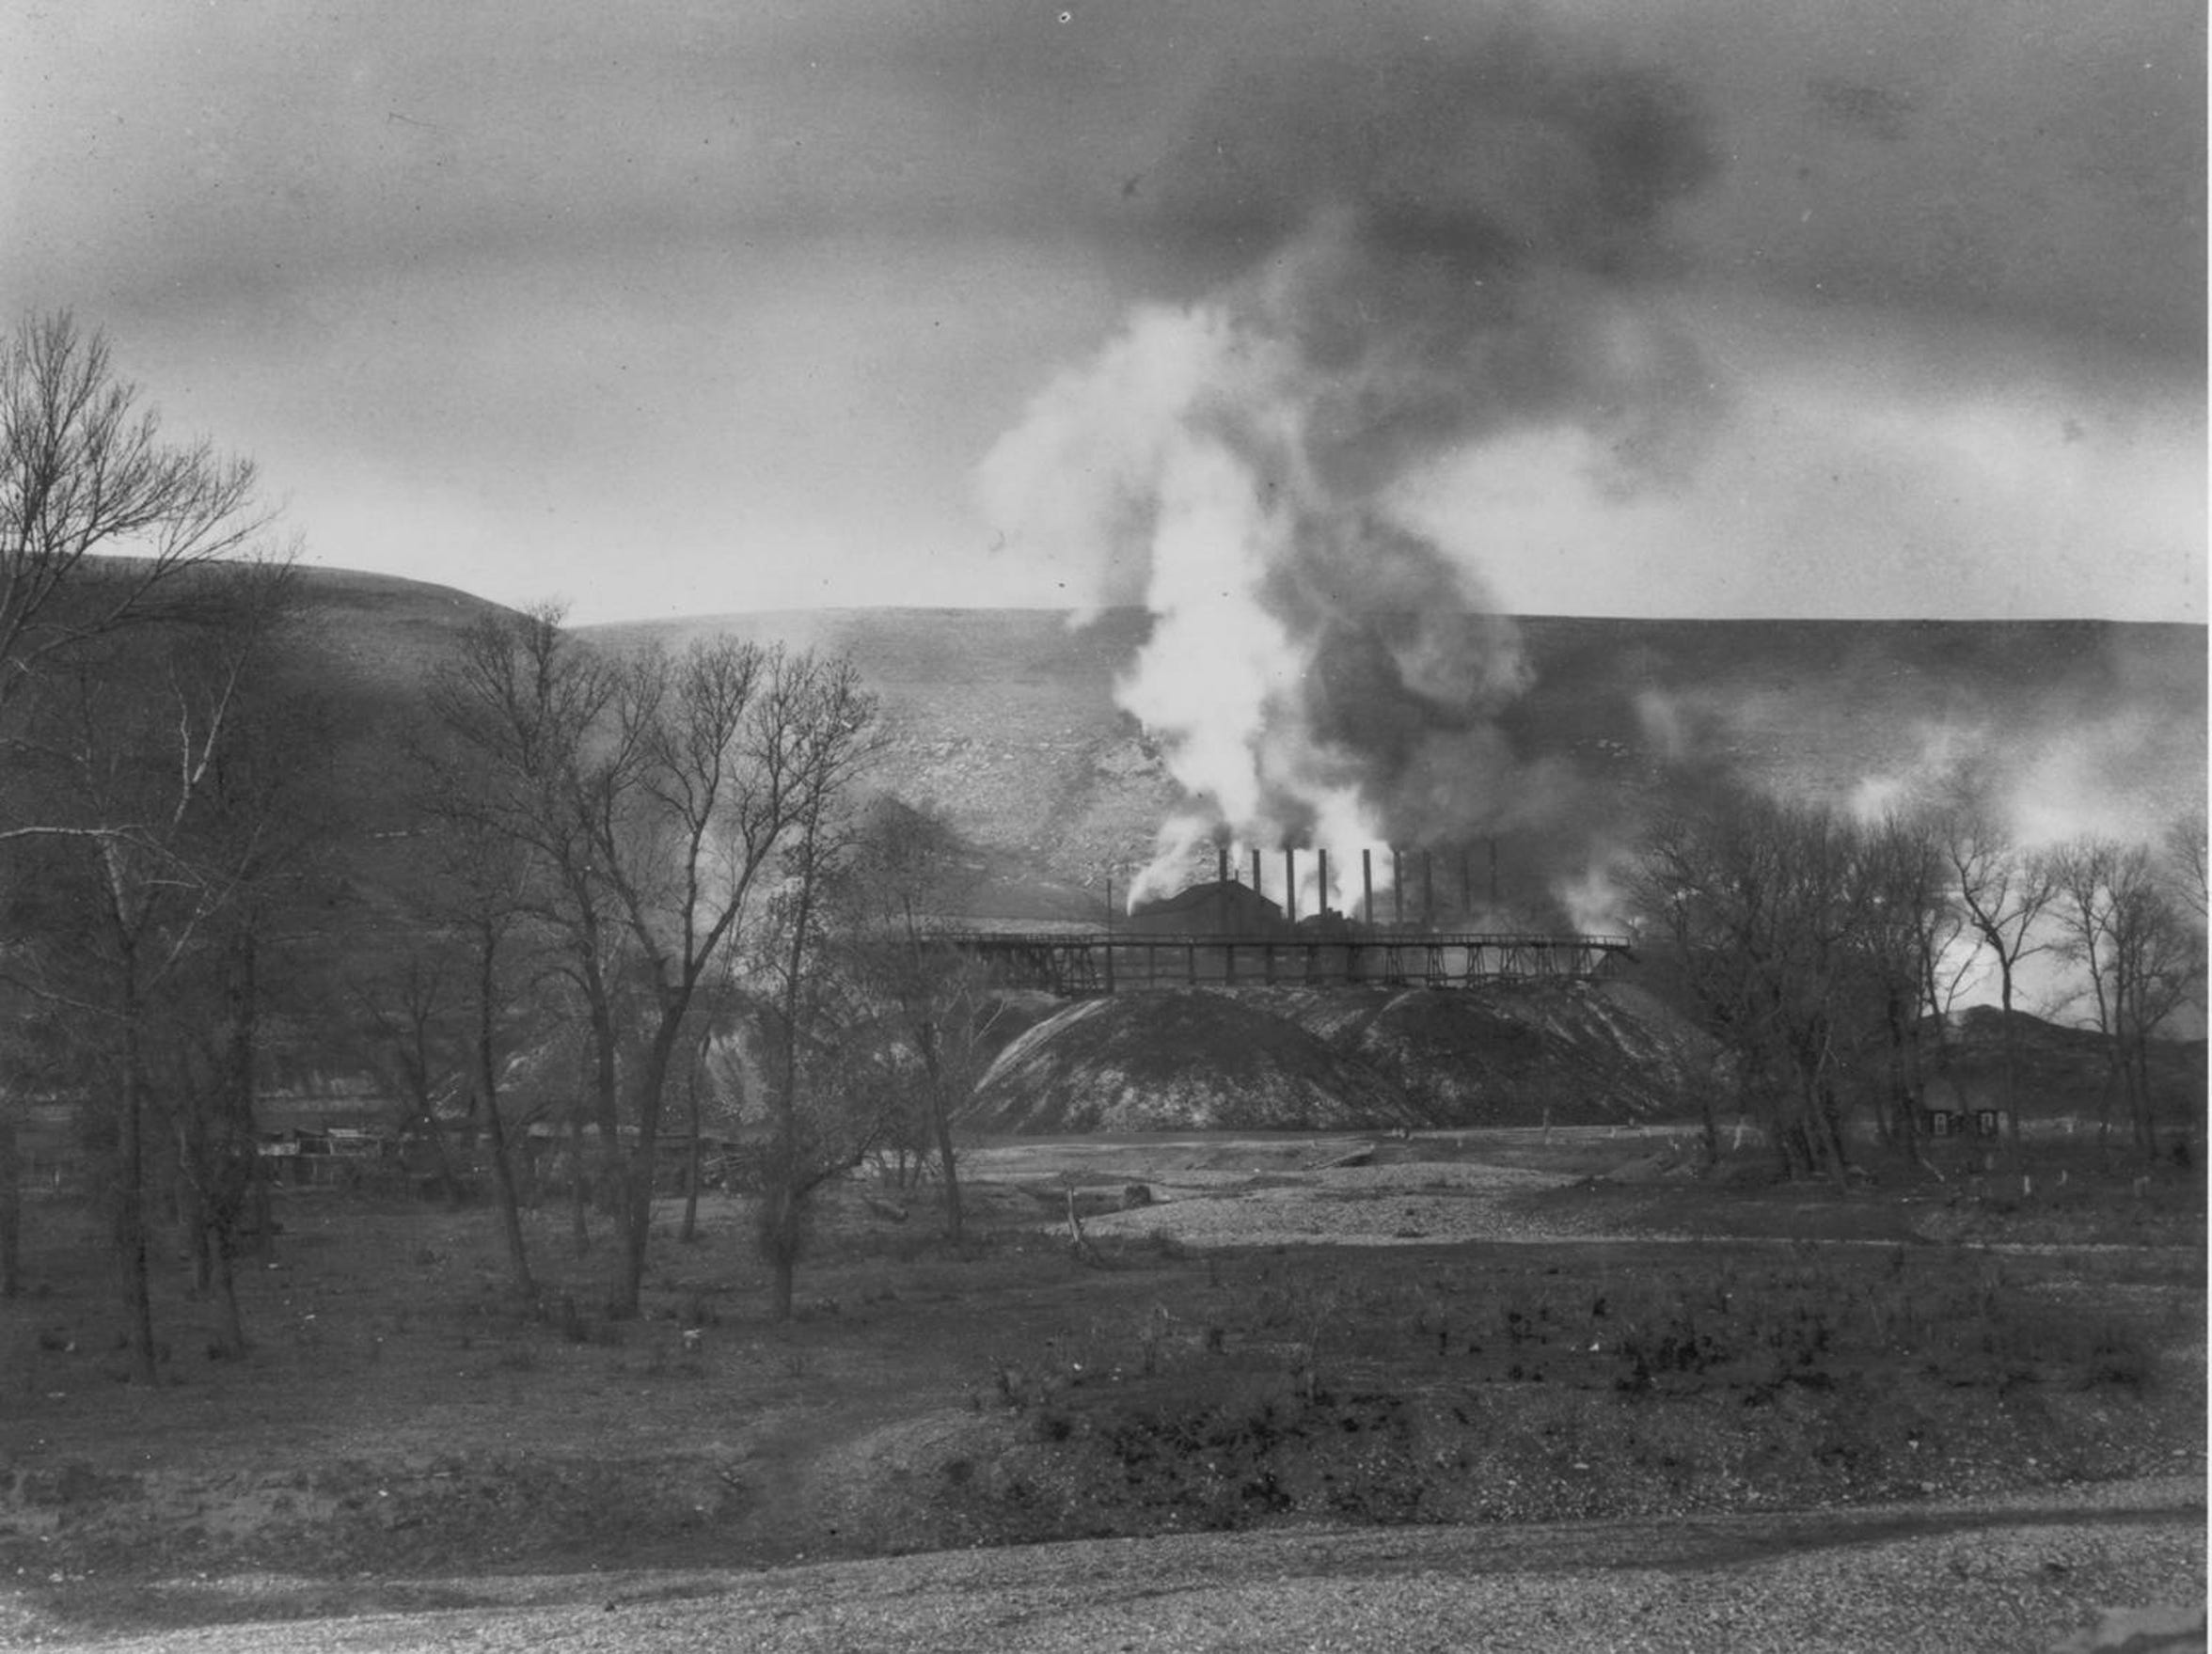 Coke Oven Flats at the Belt Mine in 1896. Coal from the mine was placed in ovens to make coke that was burned at the smelter in Great Falls.